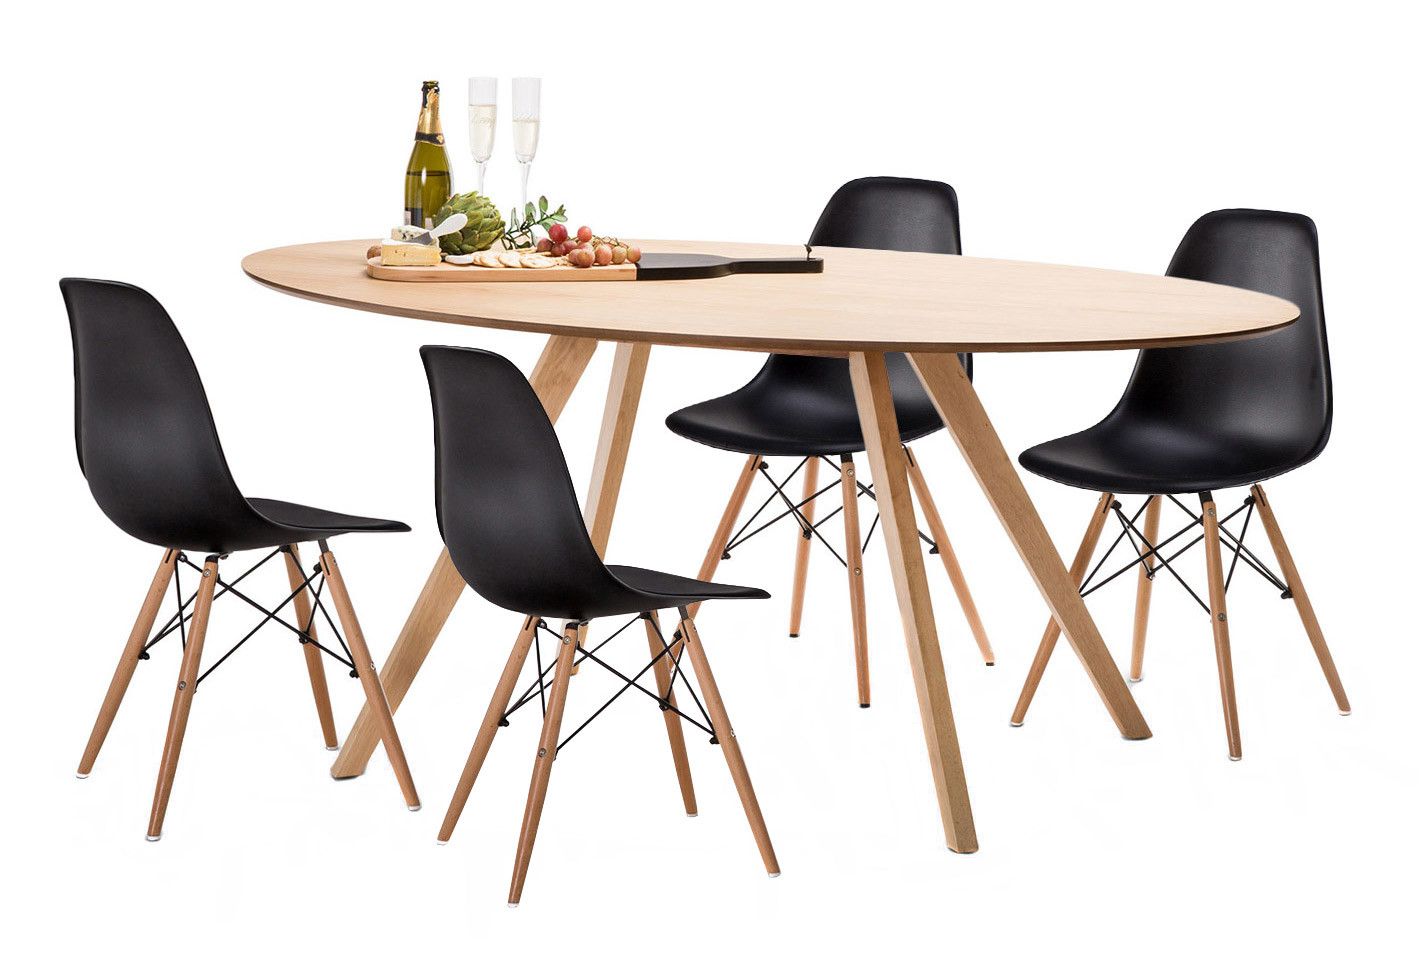 Eames Dining Table Replica Dsw Dining Table Eames  : 1 from honansantiques.com size 1420 x 953 jpeg 197kB